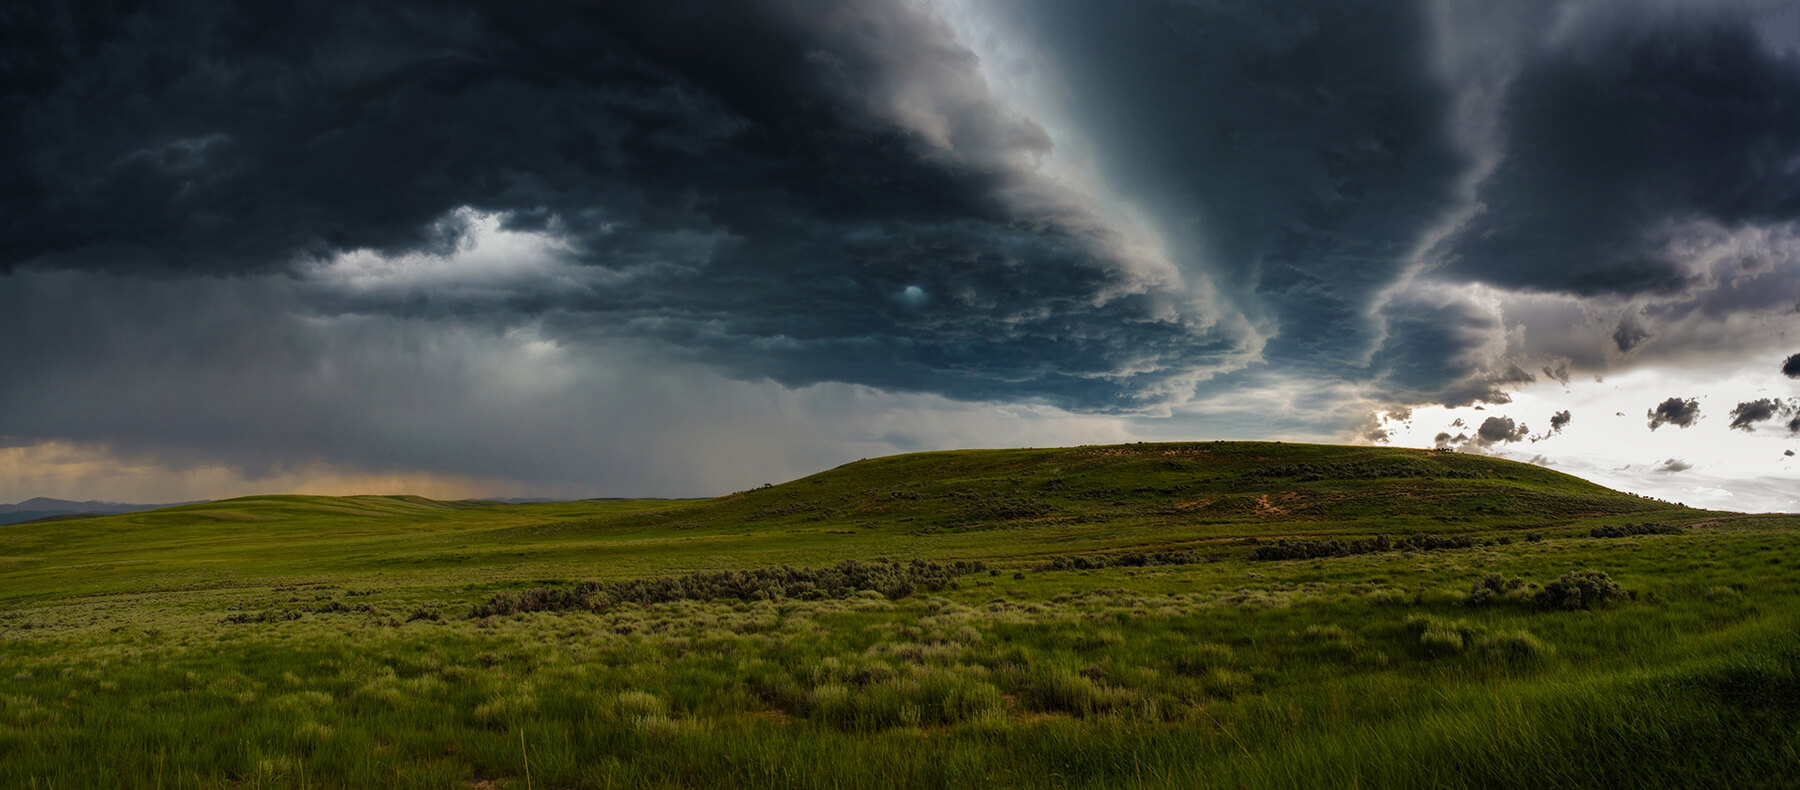 Highland Storm - 5.25 x 12 lustre print by Tanner Young